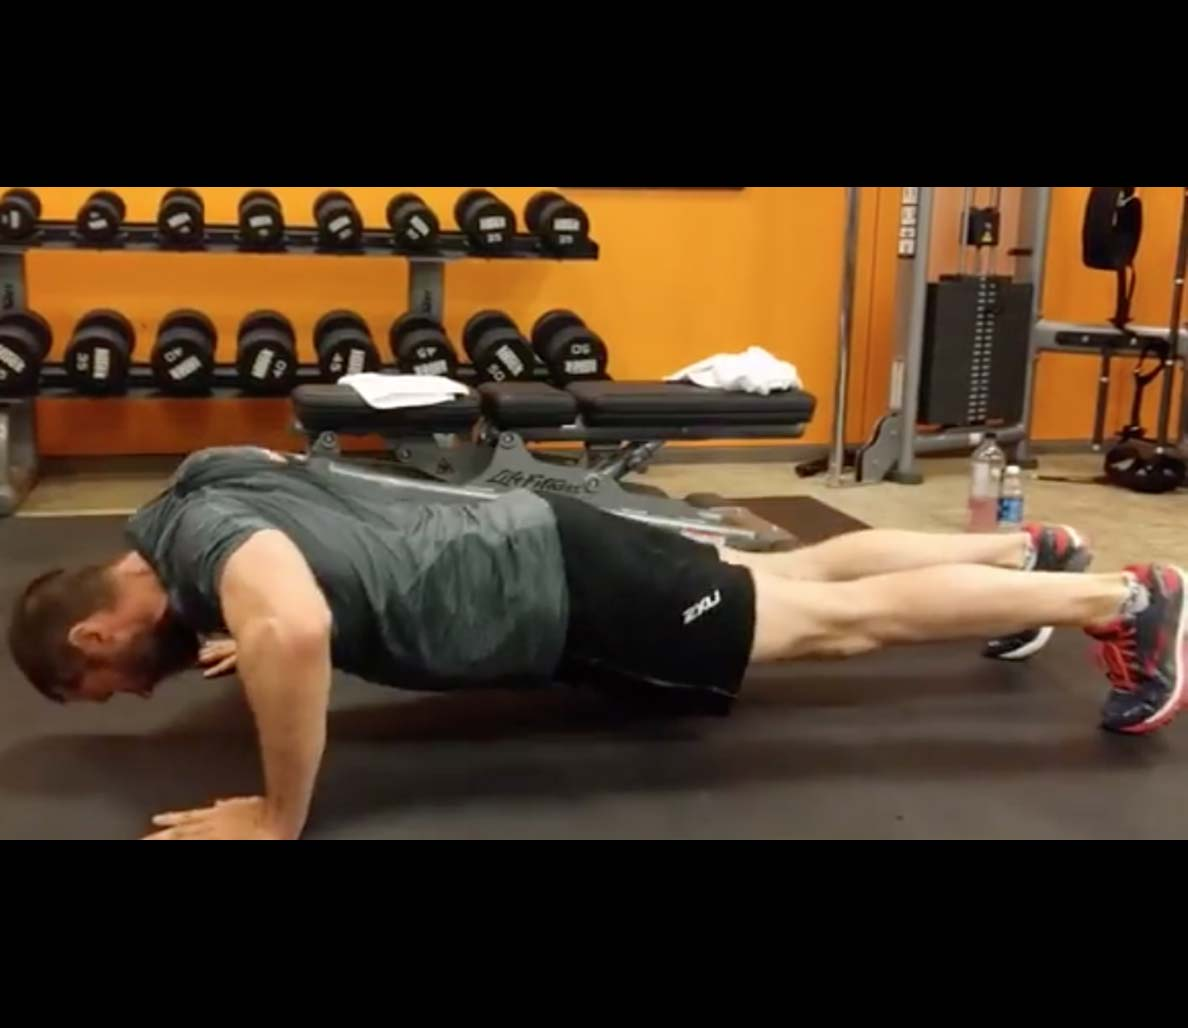 Hugh Jackman Uses Clap Pushups to Transform Into Wolverine. Here Are 3 Ways to Improve Yours. MensFitness.com